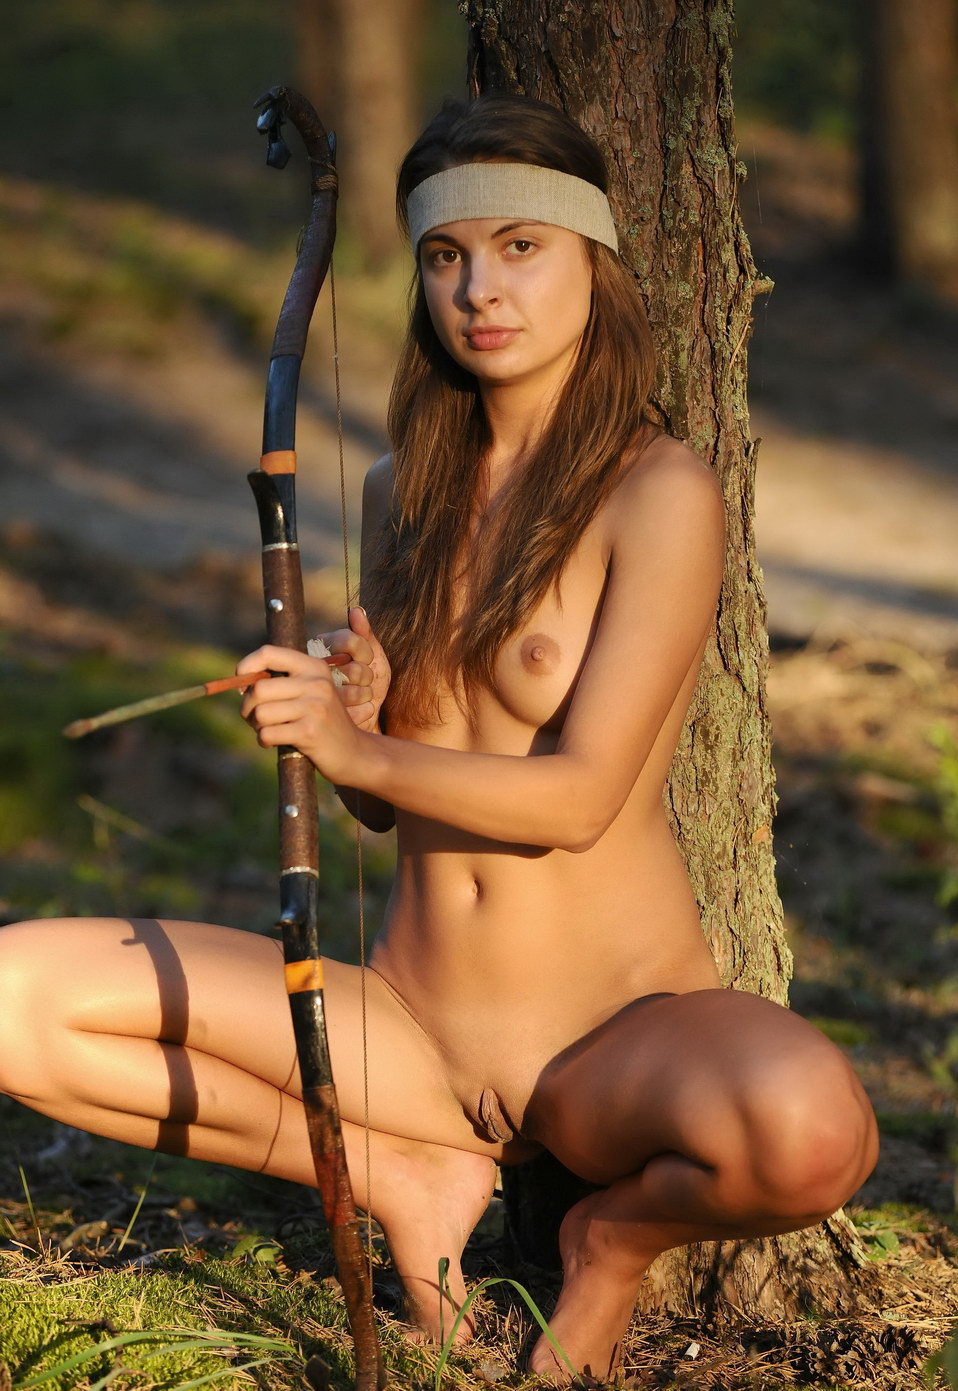 Nude women archers porncraft galleries